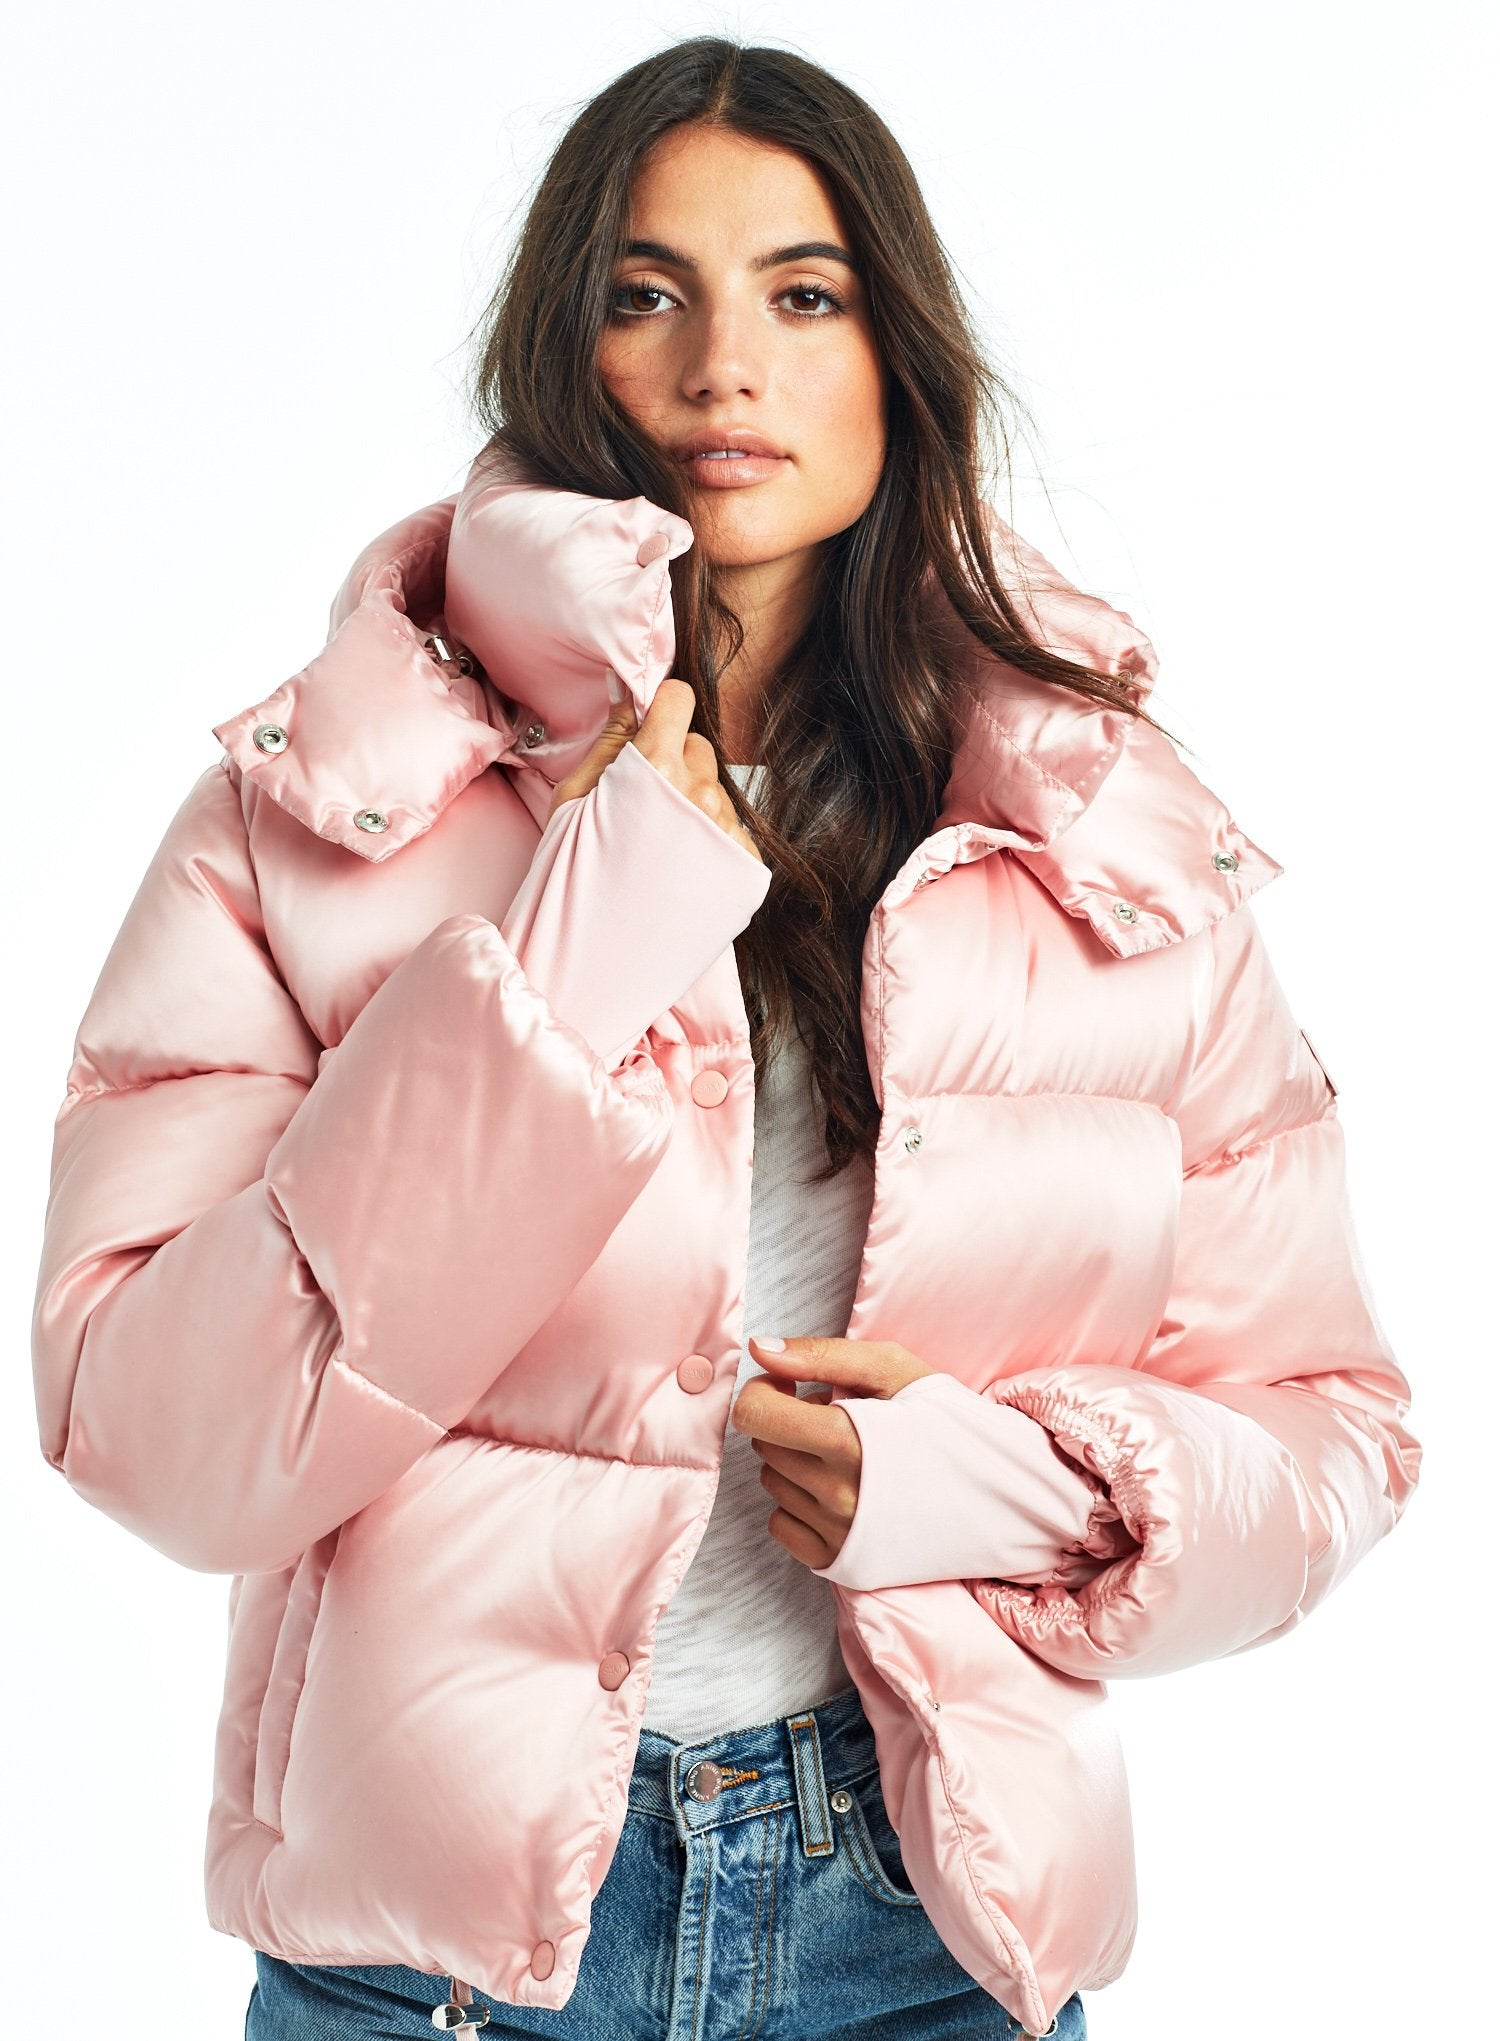 SATIN SYDNEY SATIN SYDNEY - SAM. New York Sam nyc jacket